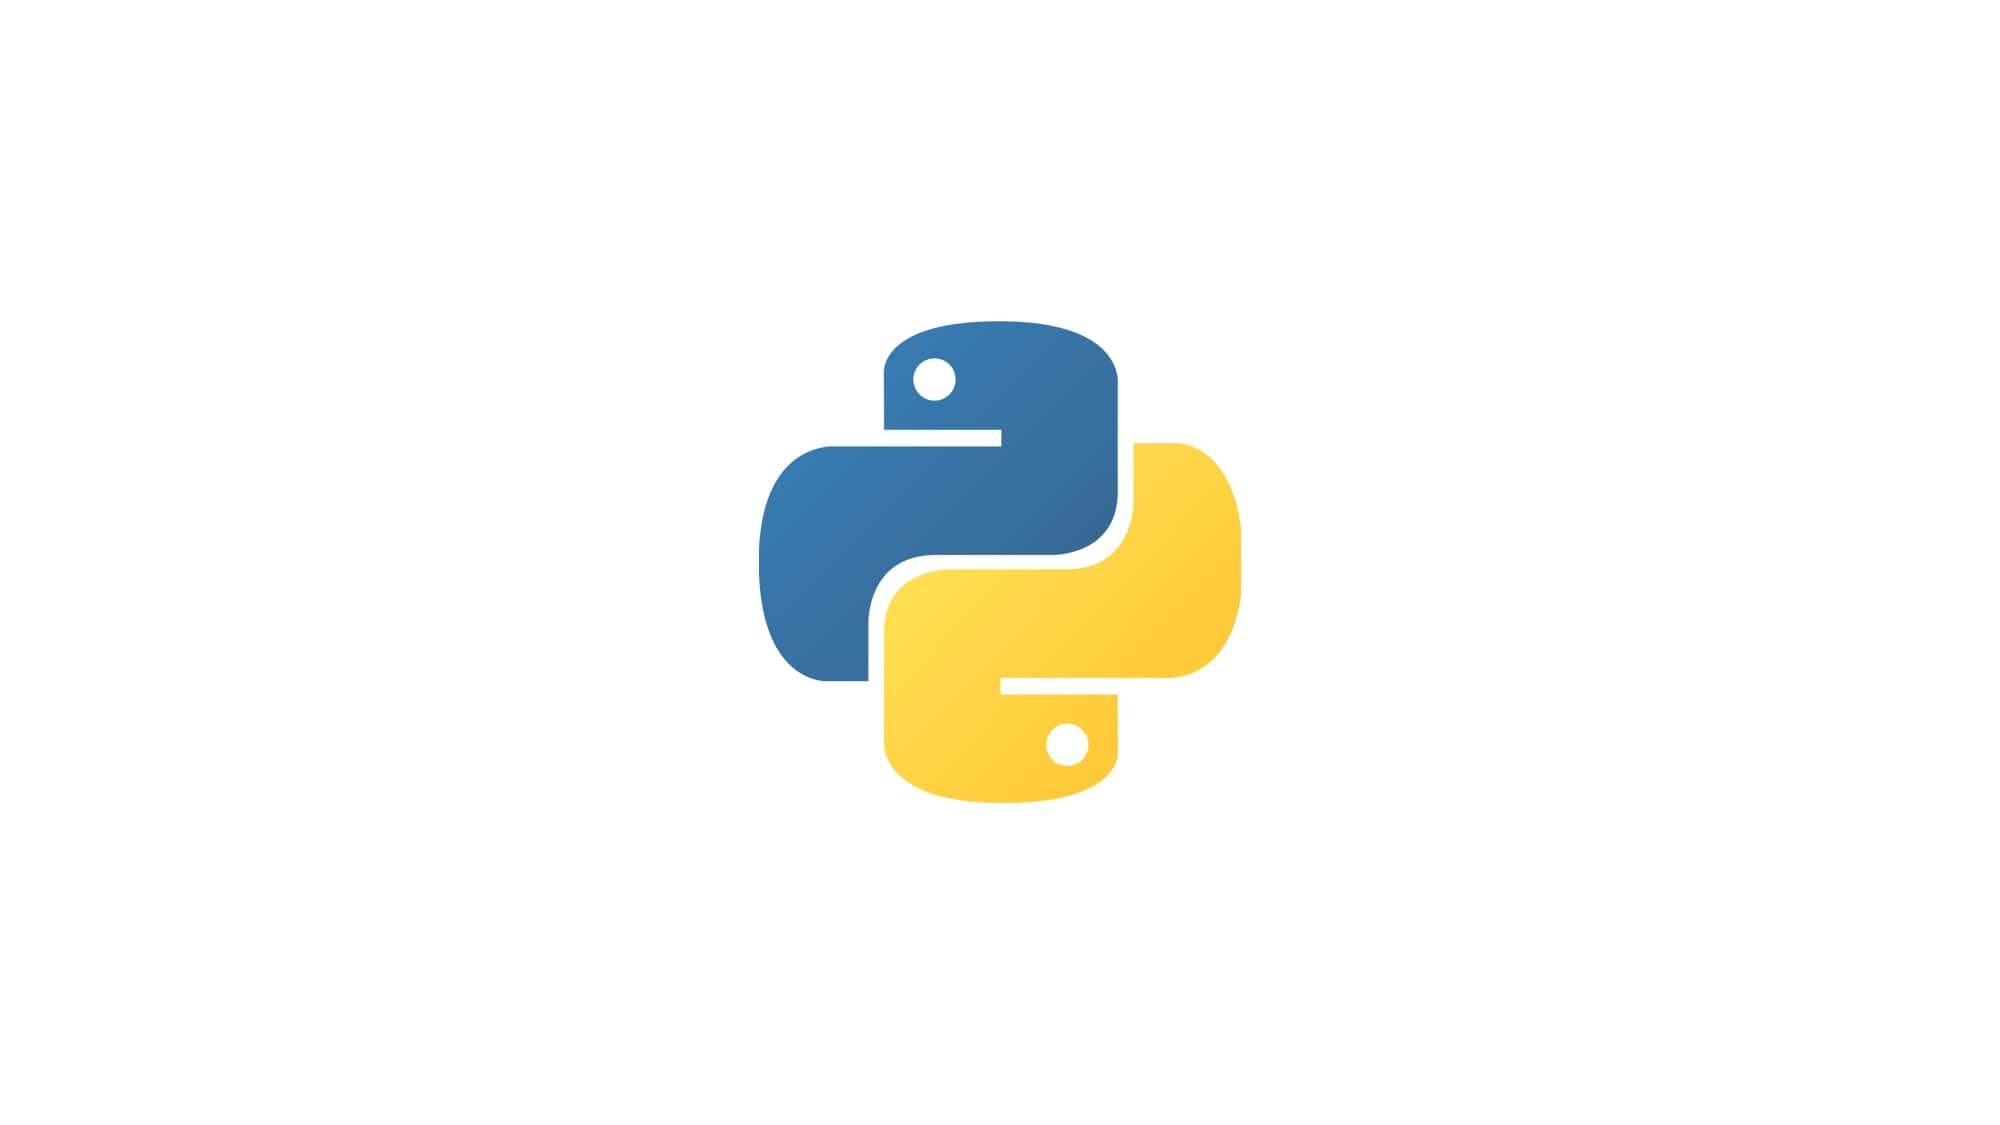 Come sostituire le stringhe con Python (Python String Replace)